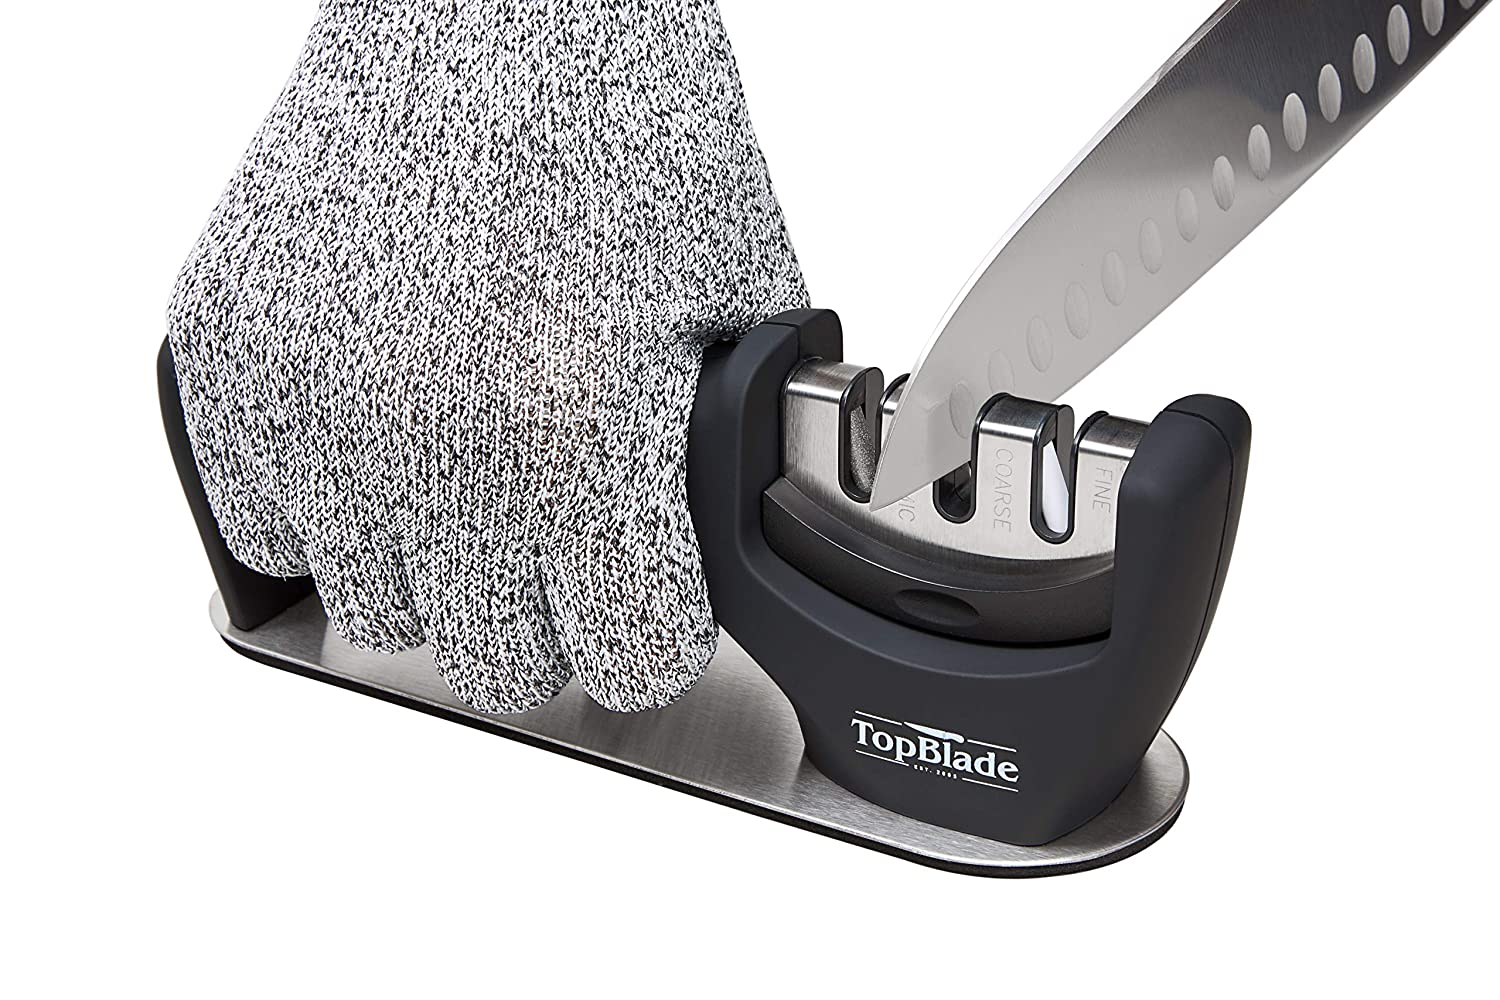 TopBlade 2019 – Upgraded 3-stage Kitchen Knife Sharpener to Restore, Sharpen and Polish Steel & Ceramic Blades – Improved Safety & Stability - Cut Resistant Glove Included